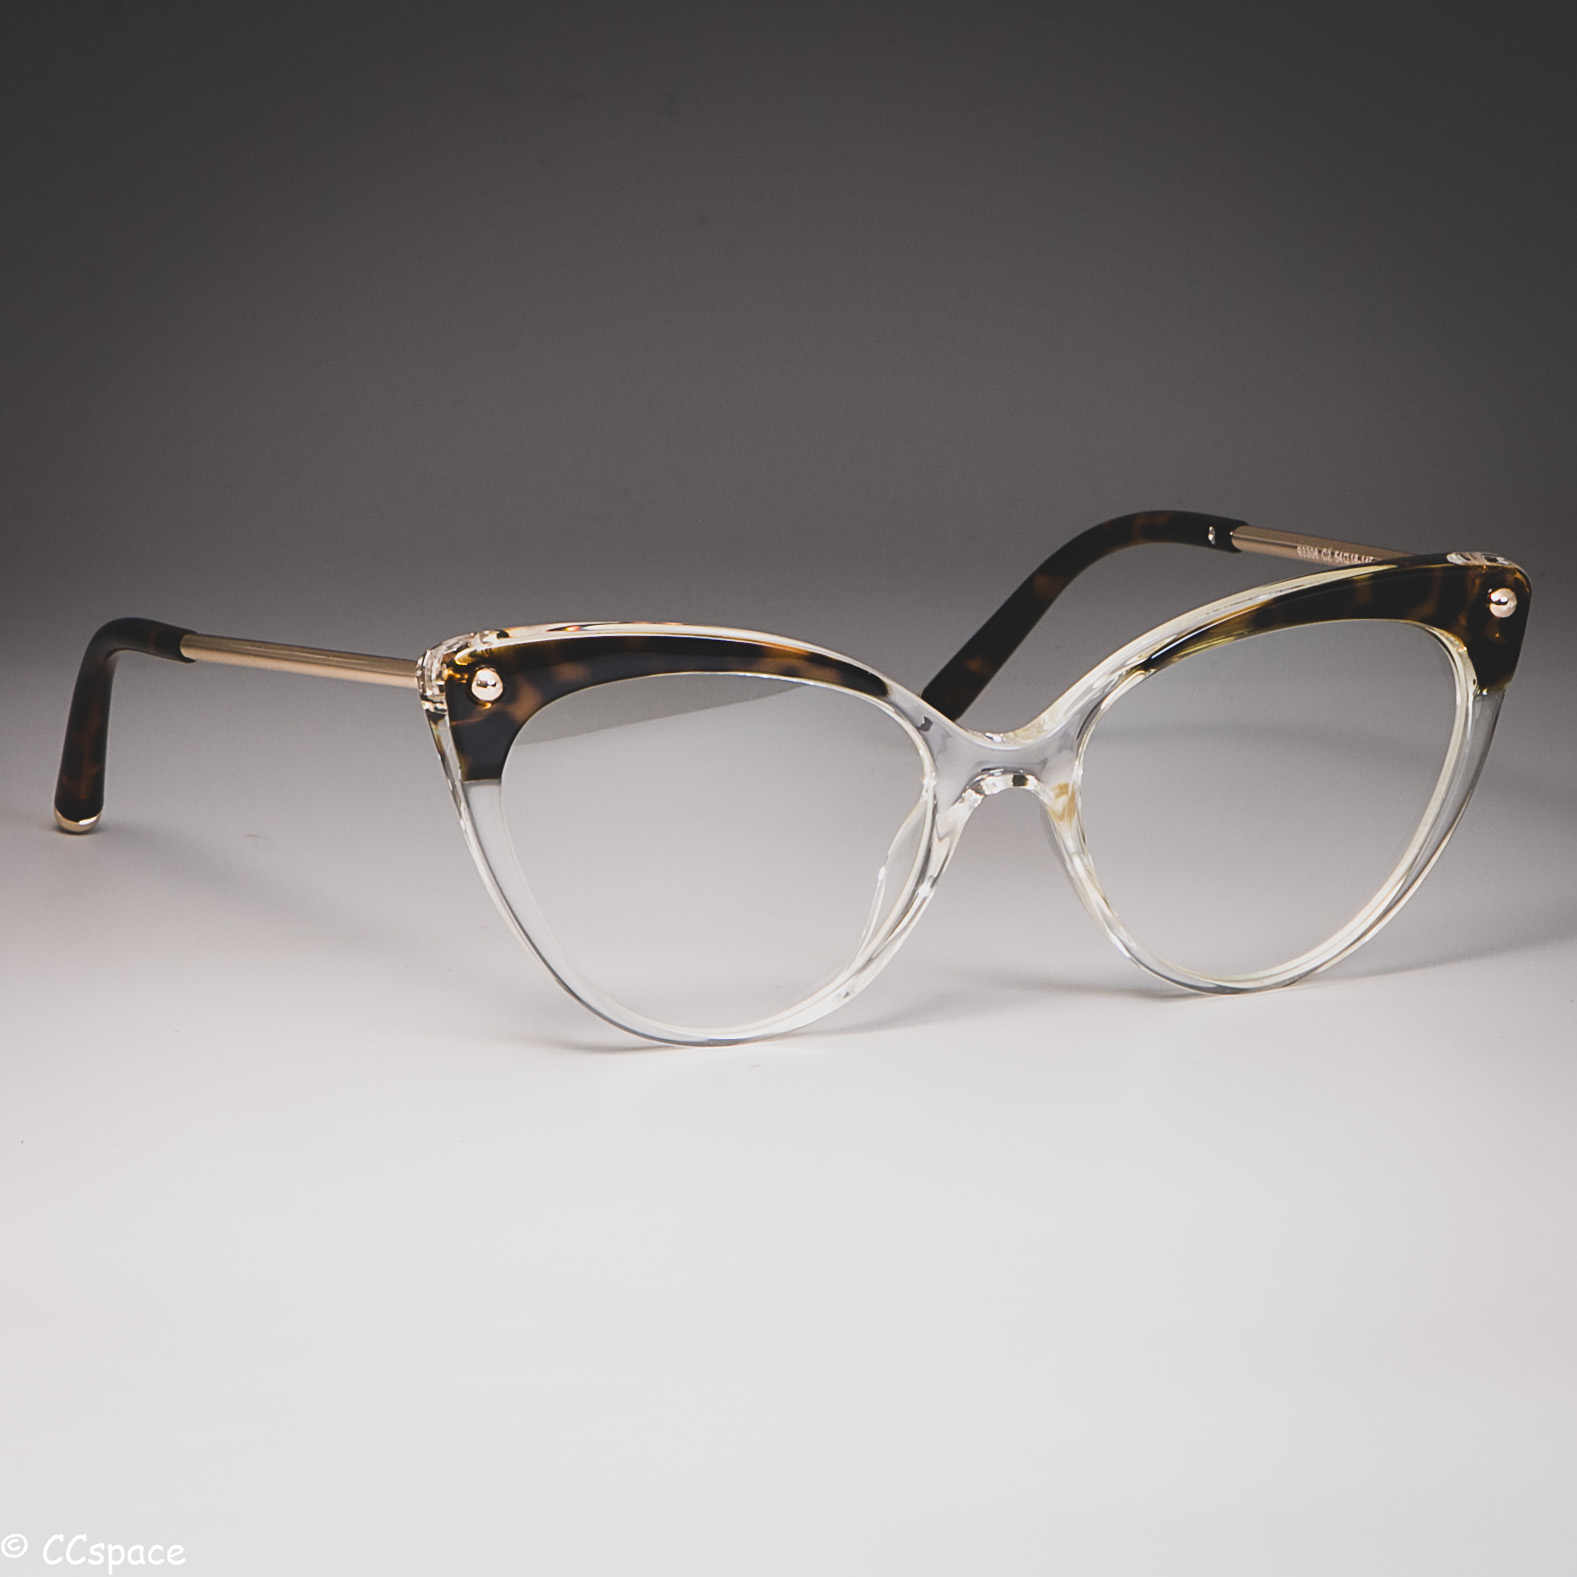 TR90 Cat Eye Glasses Frames Women Trending Rivet Styles Optical Fashion Computer Glasses 45651